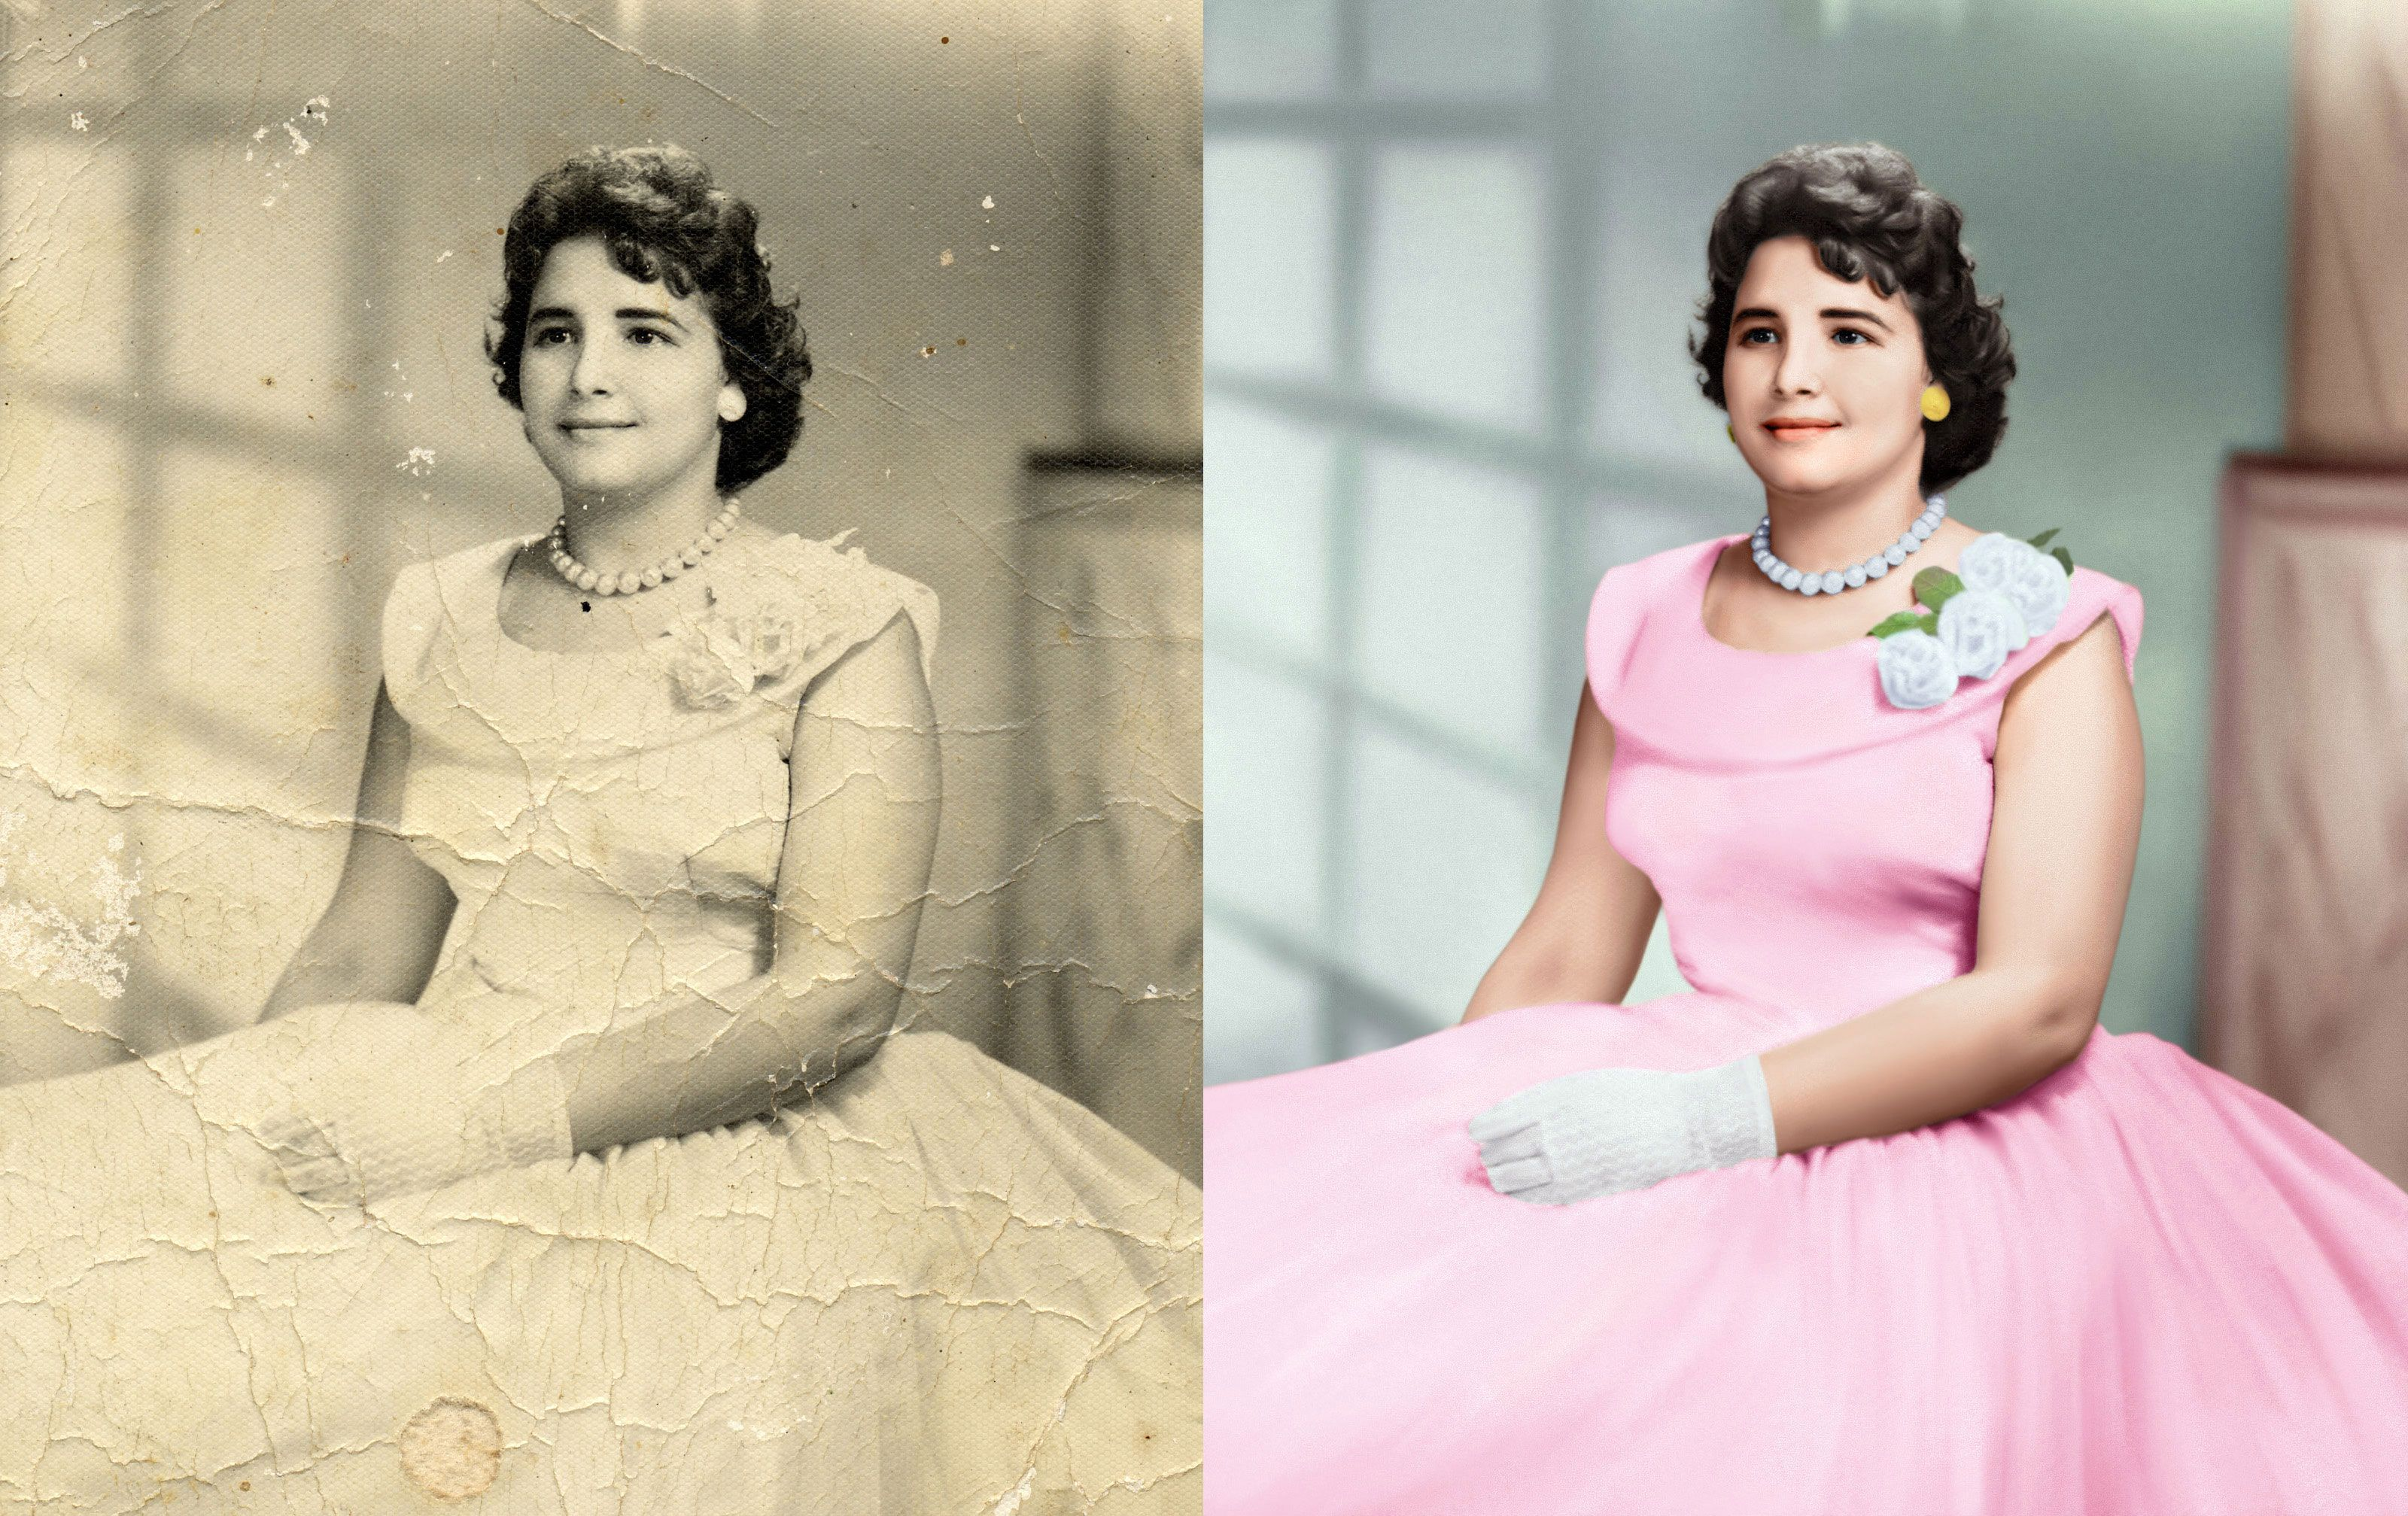 Outsource Graphic Designs leads the online photo restoration